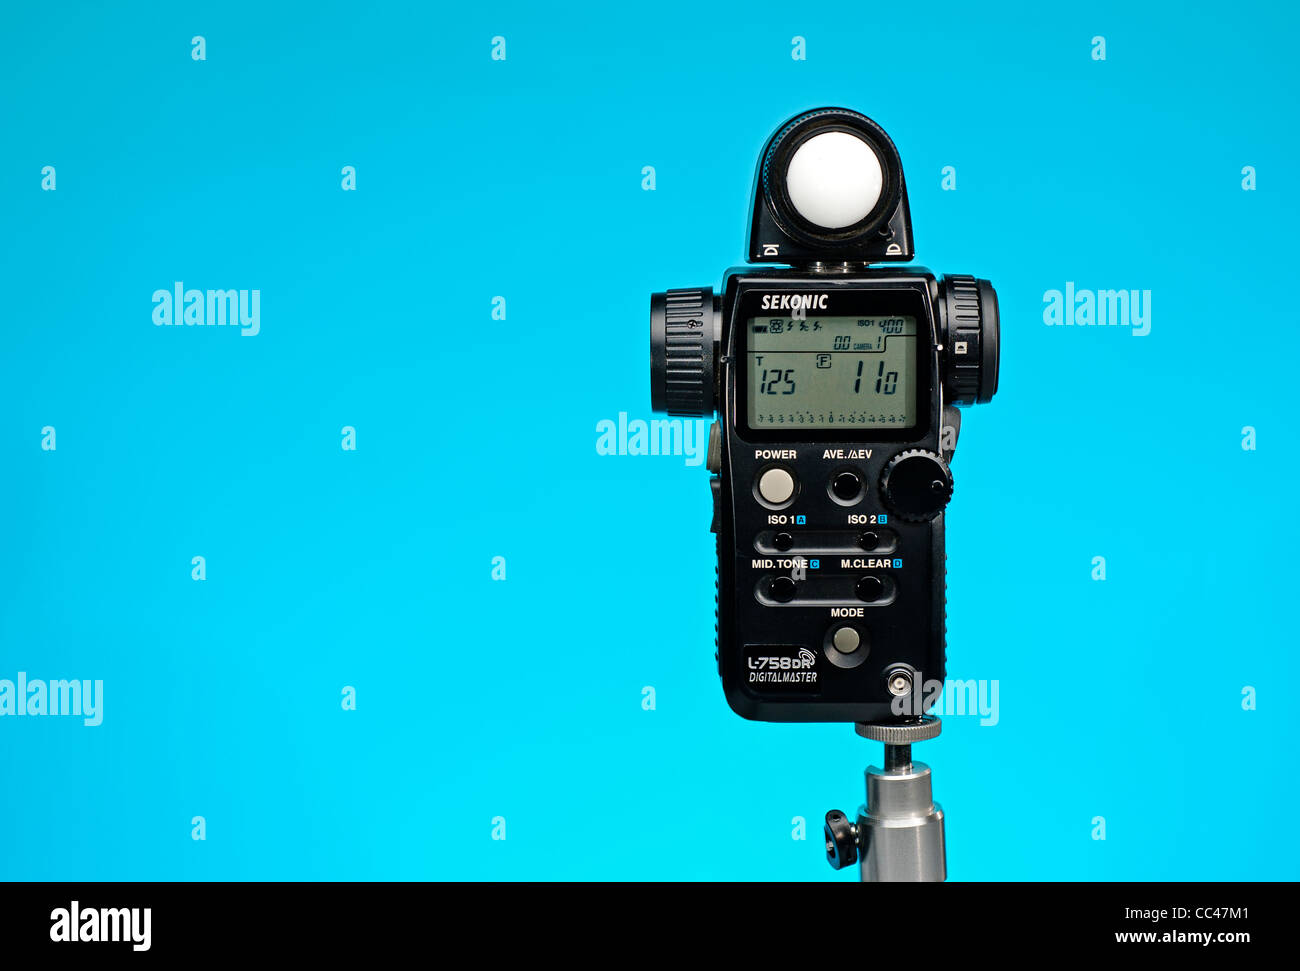 Sekonic L-758 Digital Master light meter vivid blue background with room for copy - Stock Image